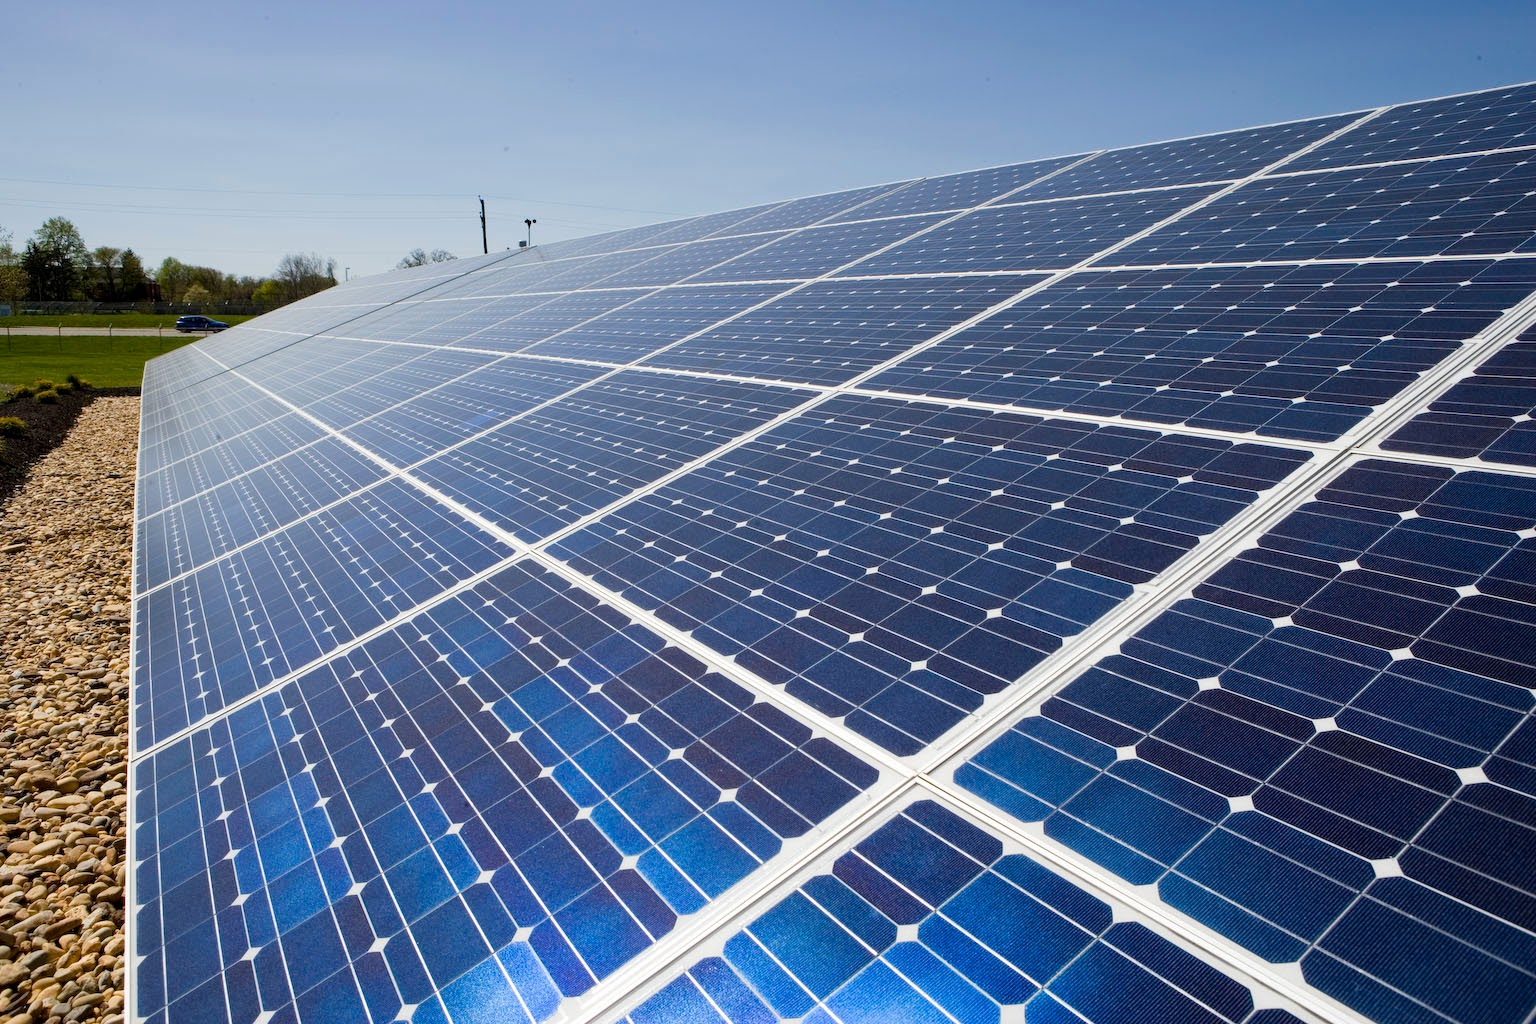 the factors to consider in determining a good production of solar energy